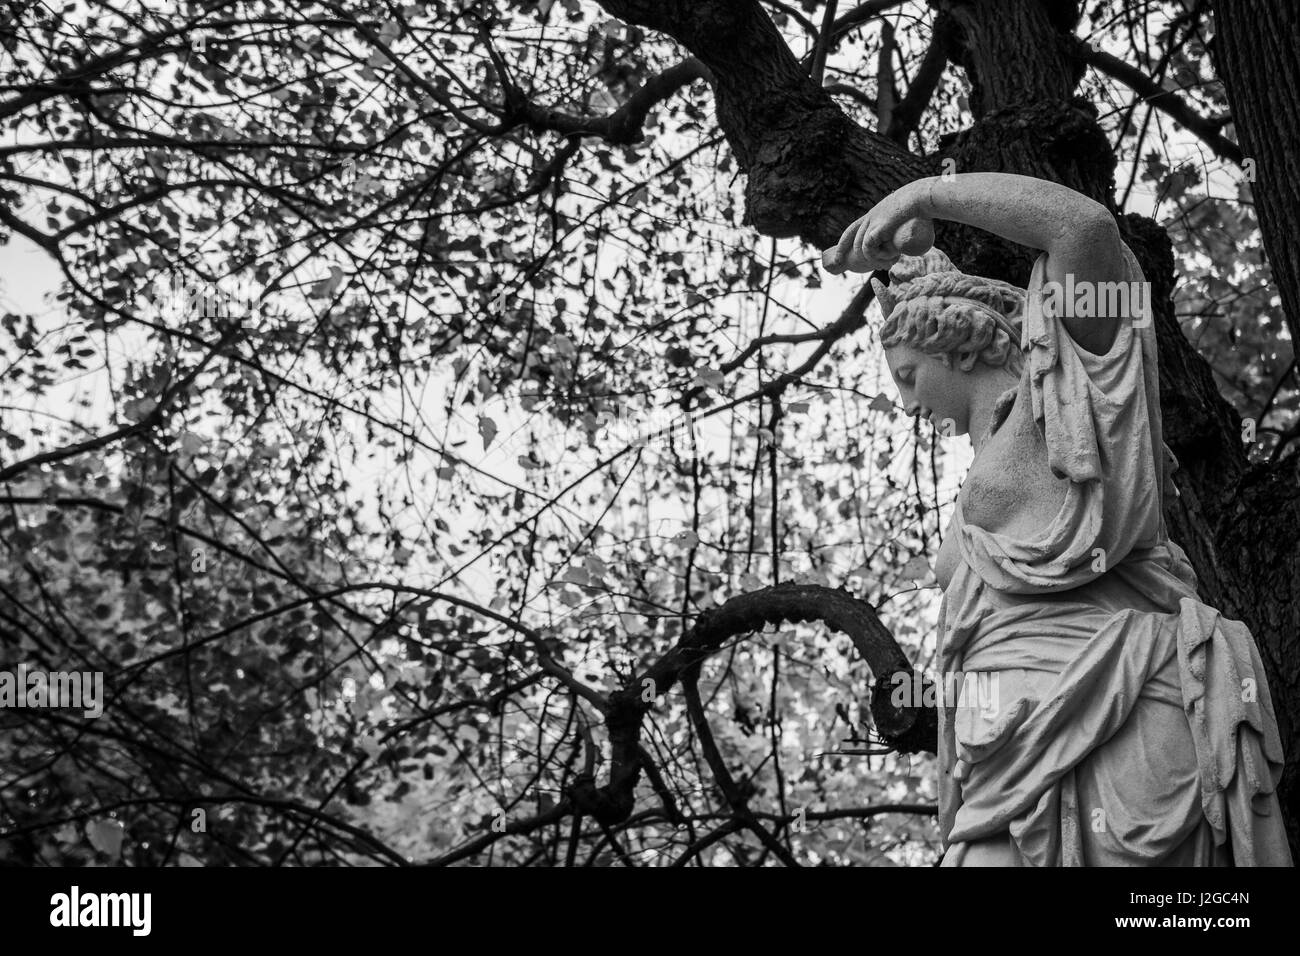 One of the many sculptures in the gardens of Schloss Schönbrunn in Vienna, Austria. - Stock Image